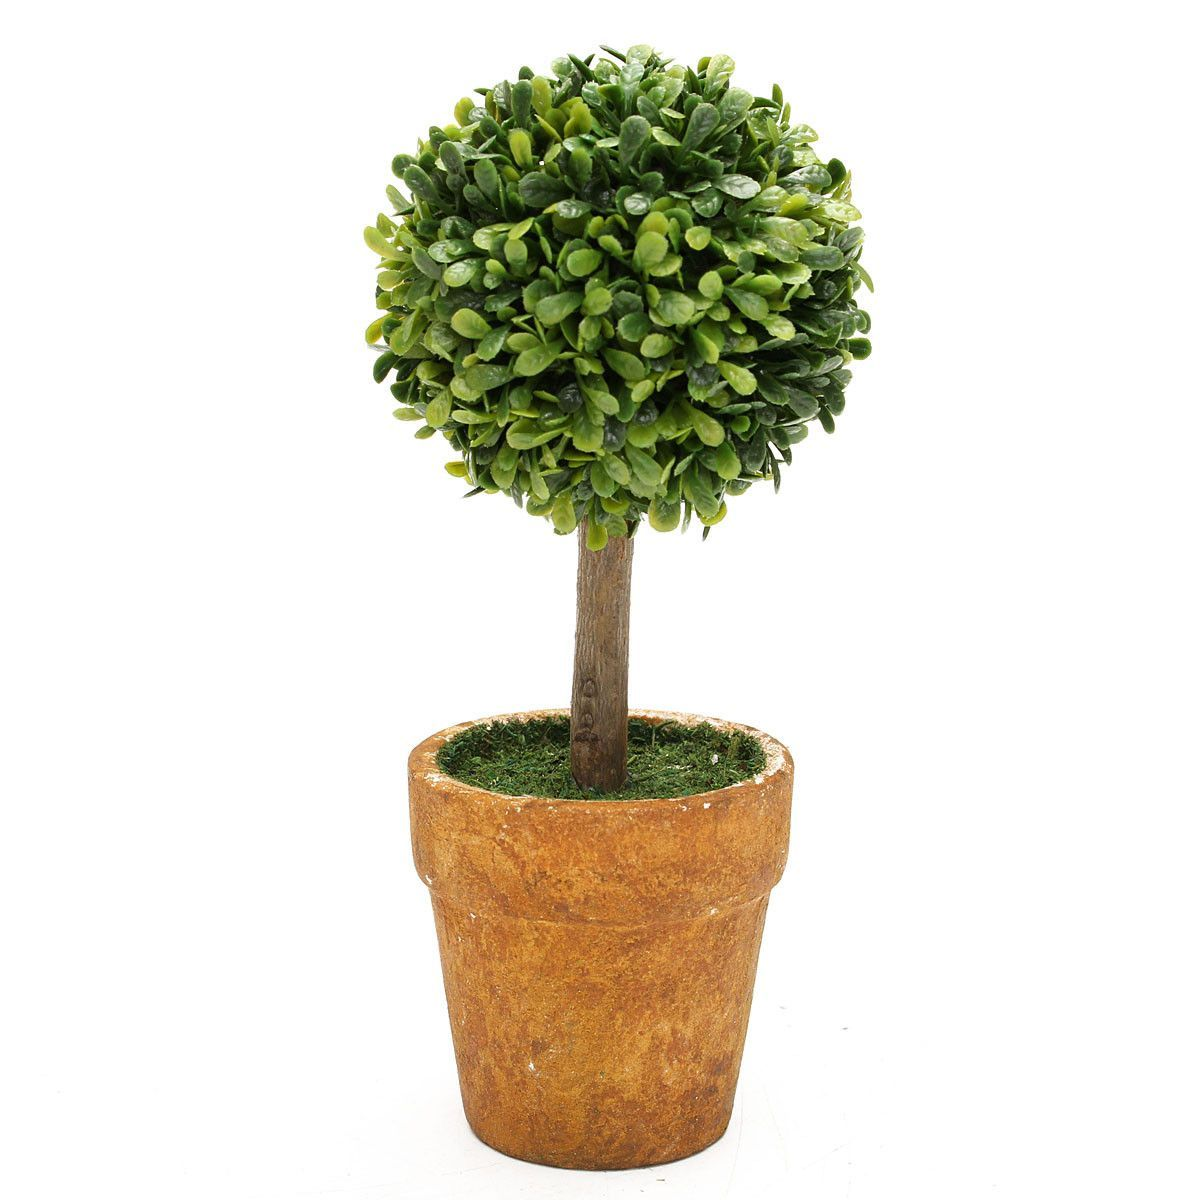 Wedding Arrangement Artificial Garden Grass Buxus Balls Boxwood Topiary Landscape Fake Trees Pots Plants Flower Pots Artificial Plants Artificial Trees Decor